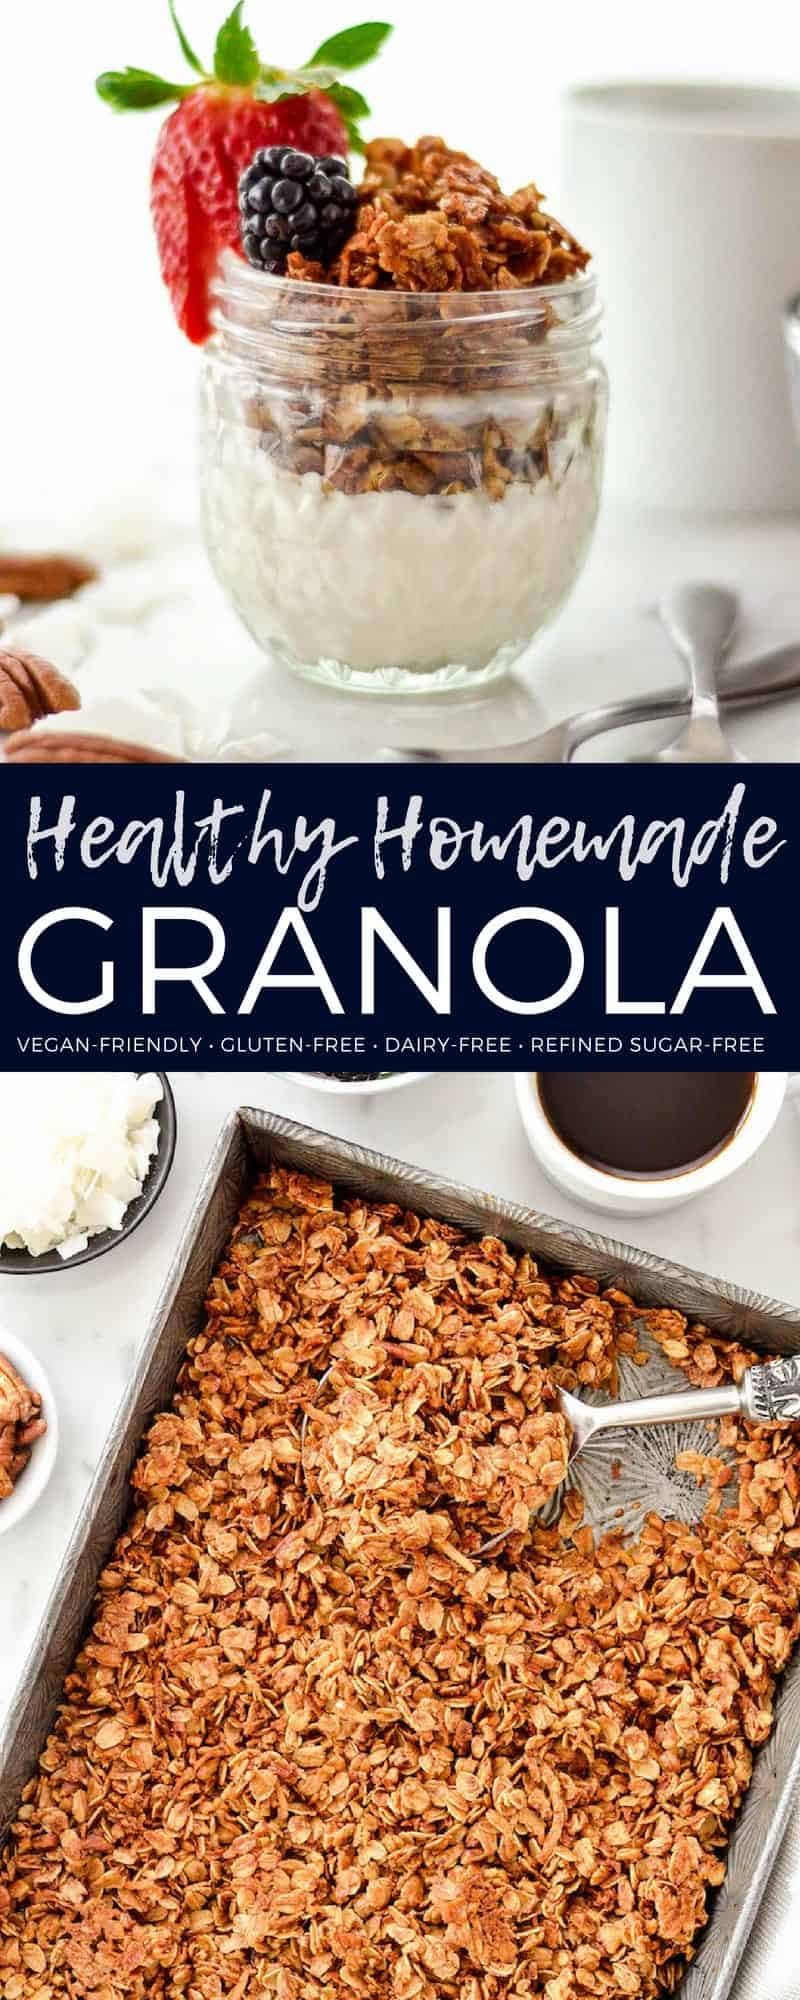 Healthy Granola Recipe with Pecans & Coconut is made with only 8 ingredients and ready in 30 minutes! It's gluten-free, dairy-free vegan and has no refined sugar! The perfect healthy breakfast or snack! #homemade #granola #healthygranola #granolarecipe